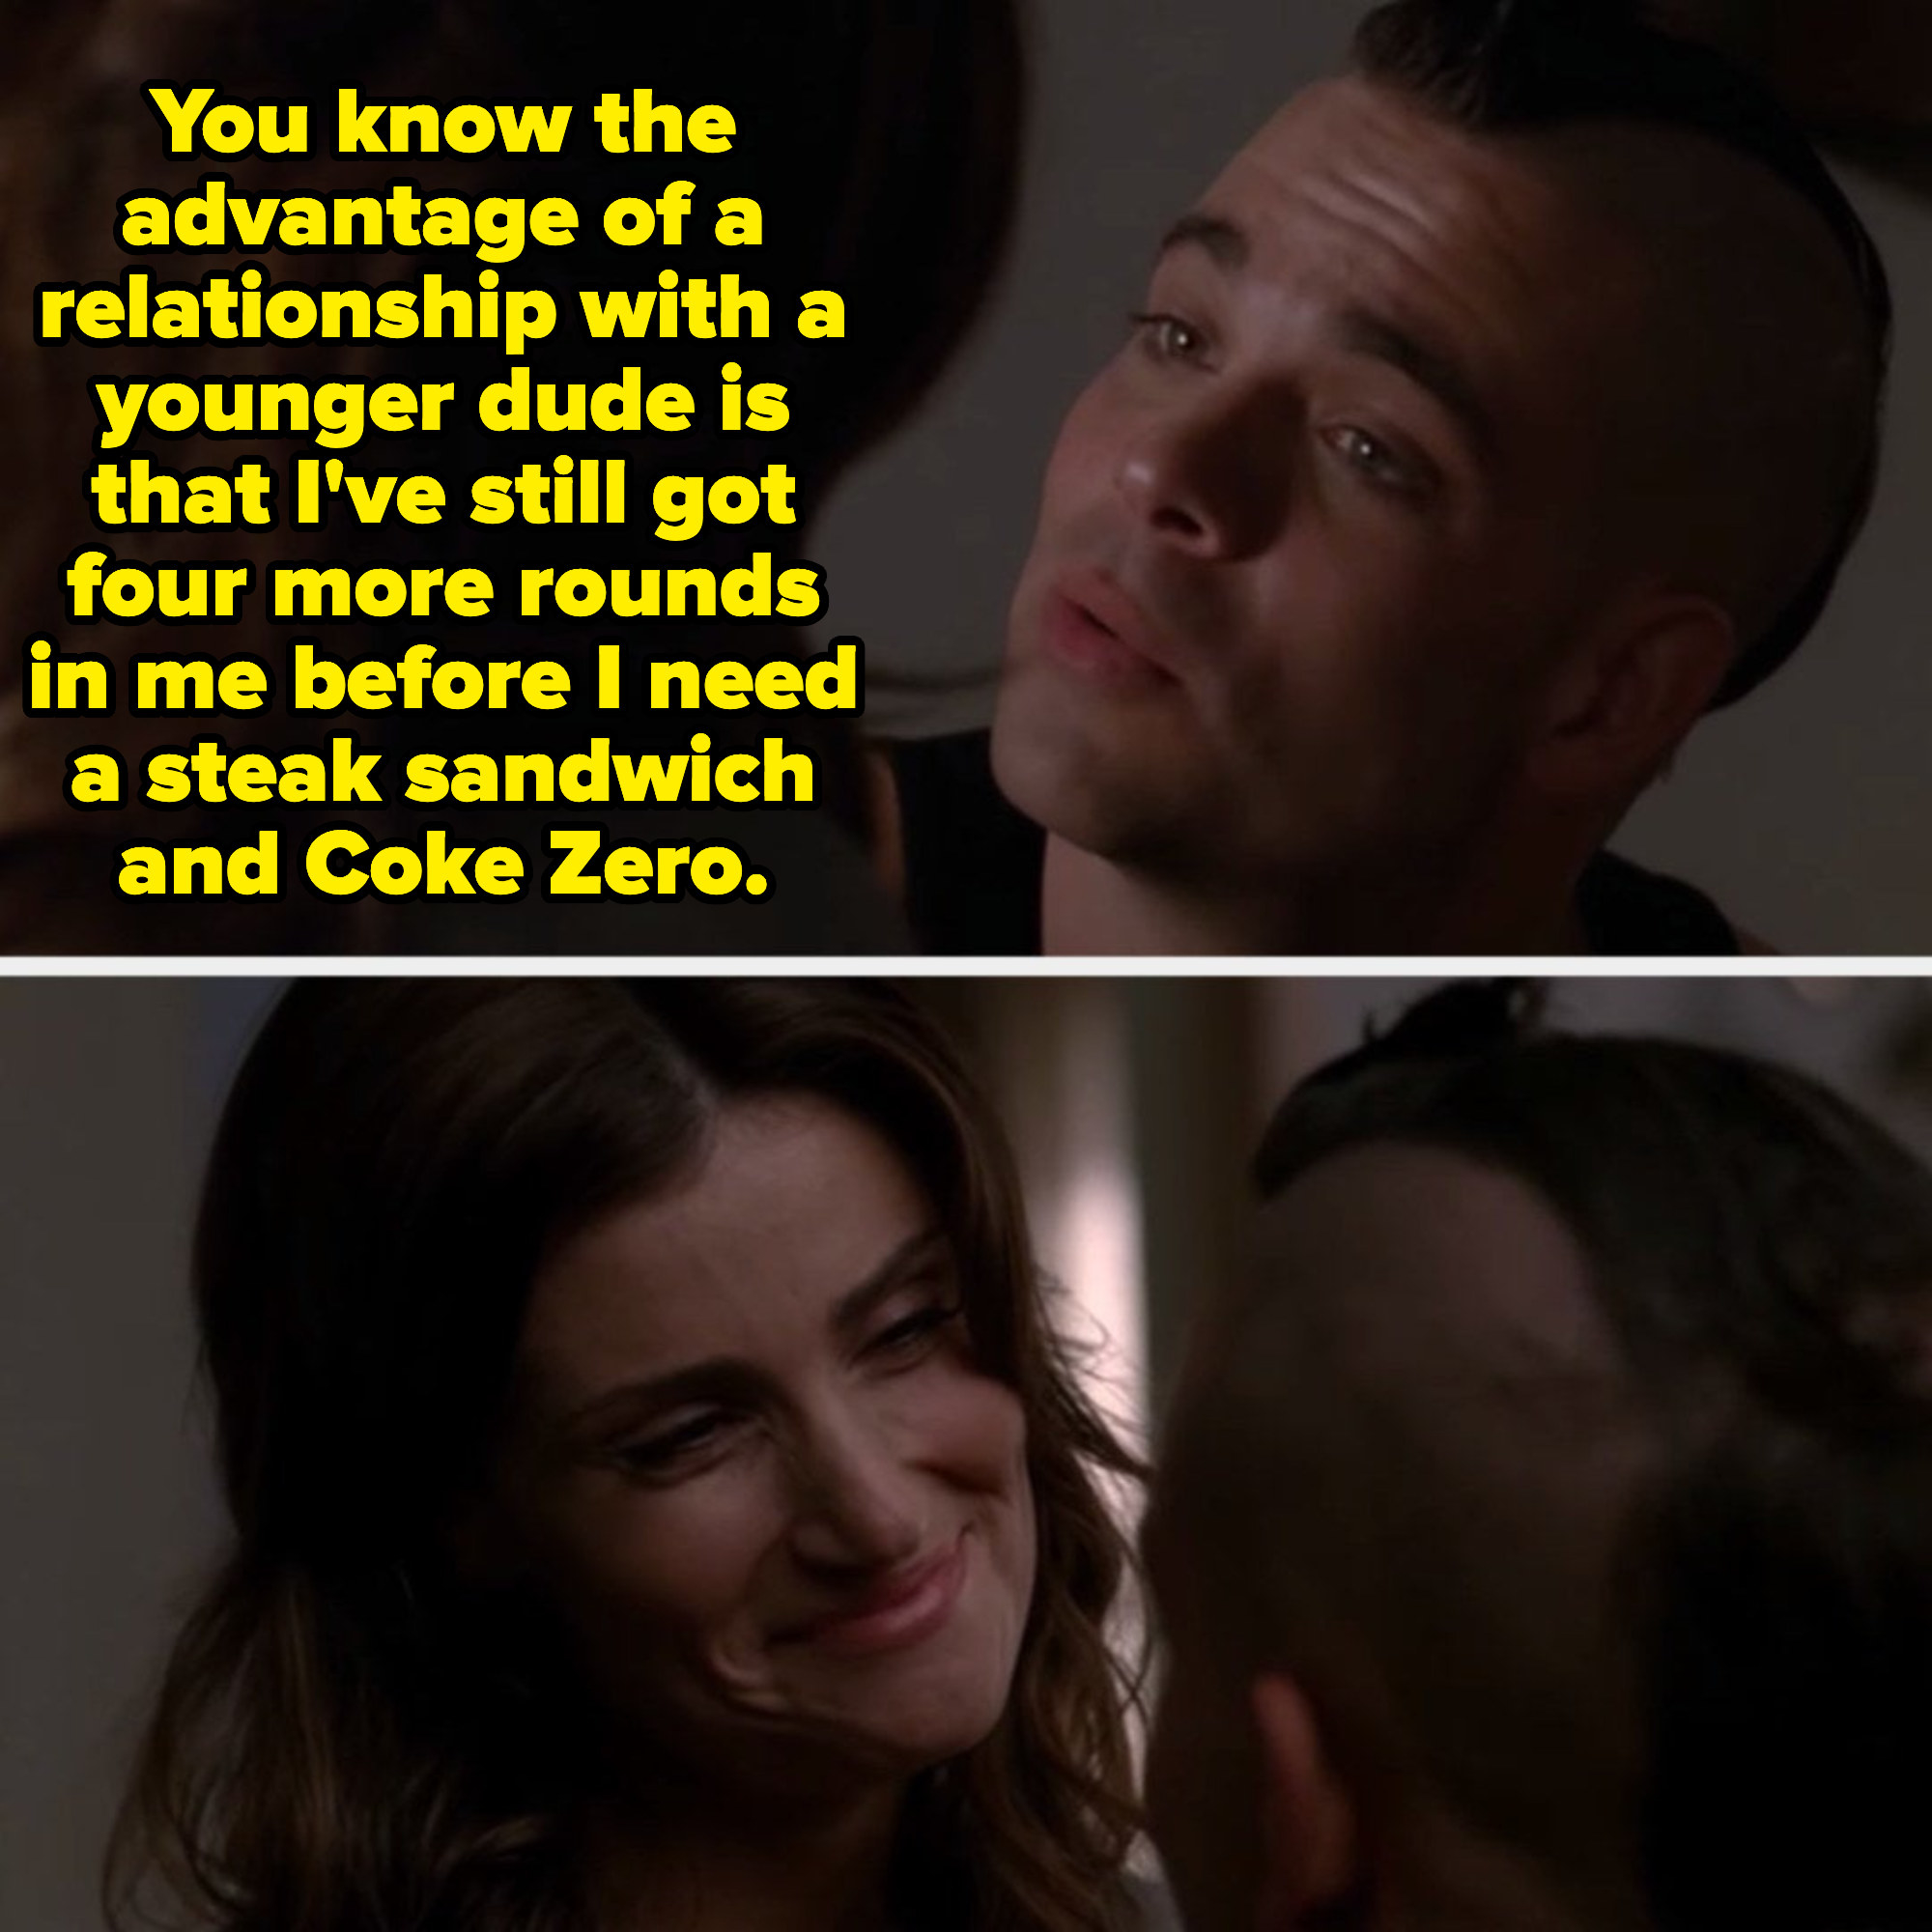 """Puck telling Shelby: """"The advantage of being in a relationship with a younger dude is I've still got four more rounds in me before I need a steak sandwich and Coke Zero"""""""